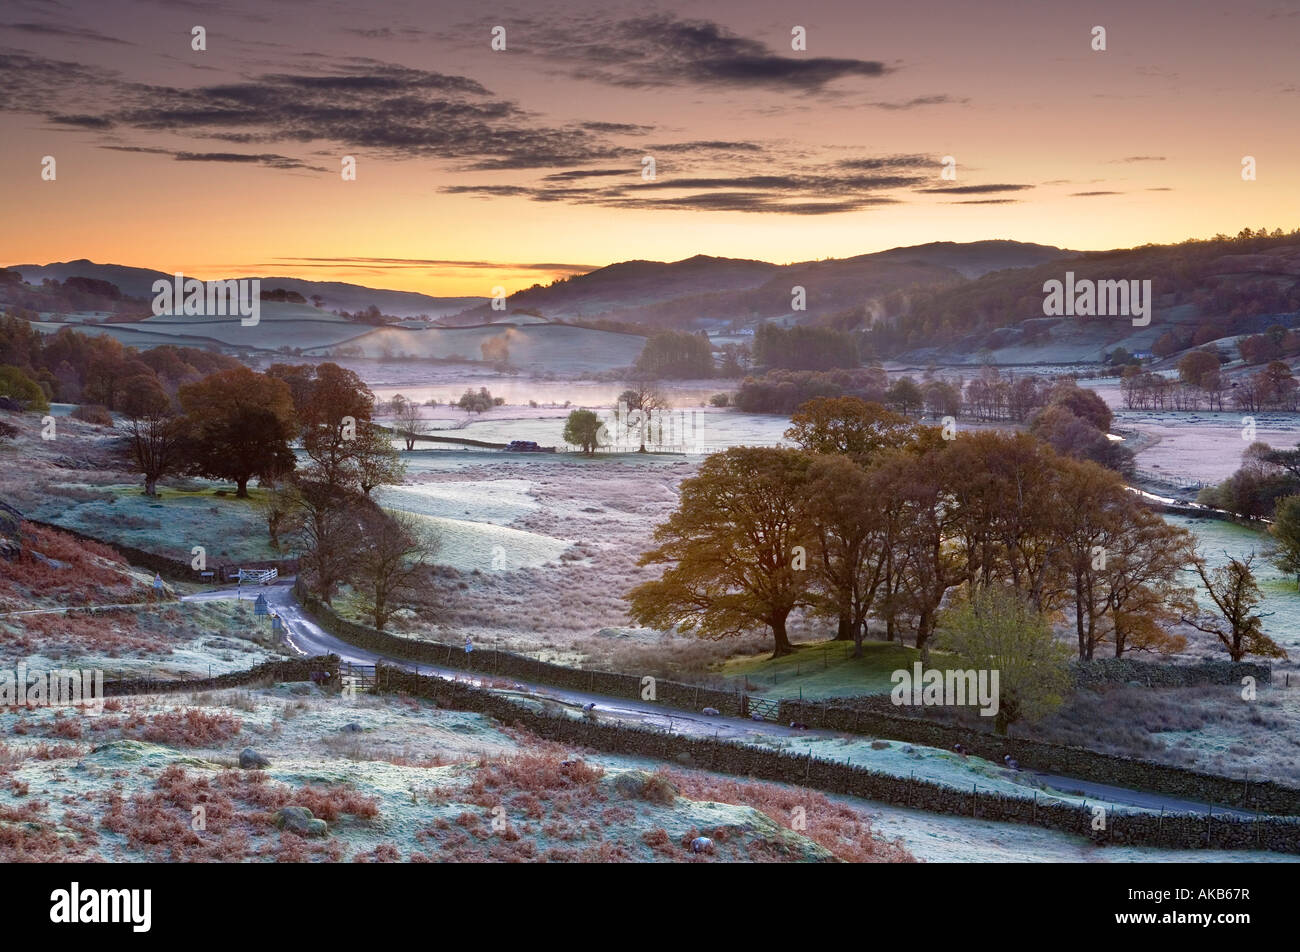 Frosty mattina, Little Langdale, Lake District, Cumbria, Inghilterra Immagini Stock